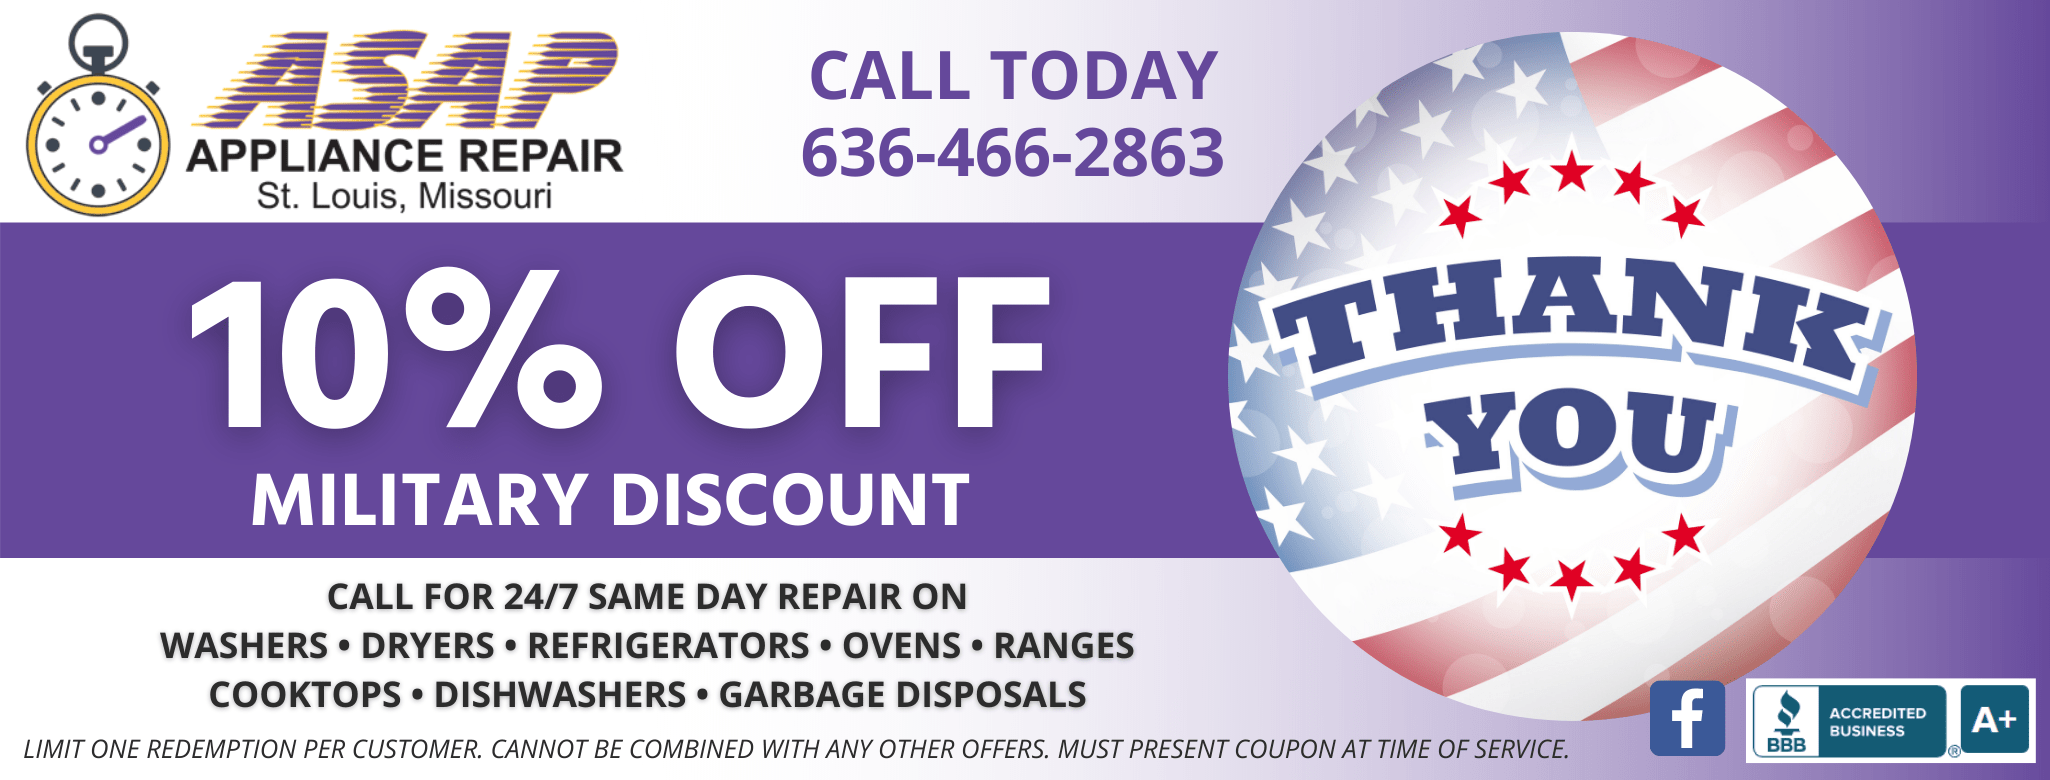 ASAP Appliance Repair 10% Off Military Discount Save on Appliance Repair Service